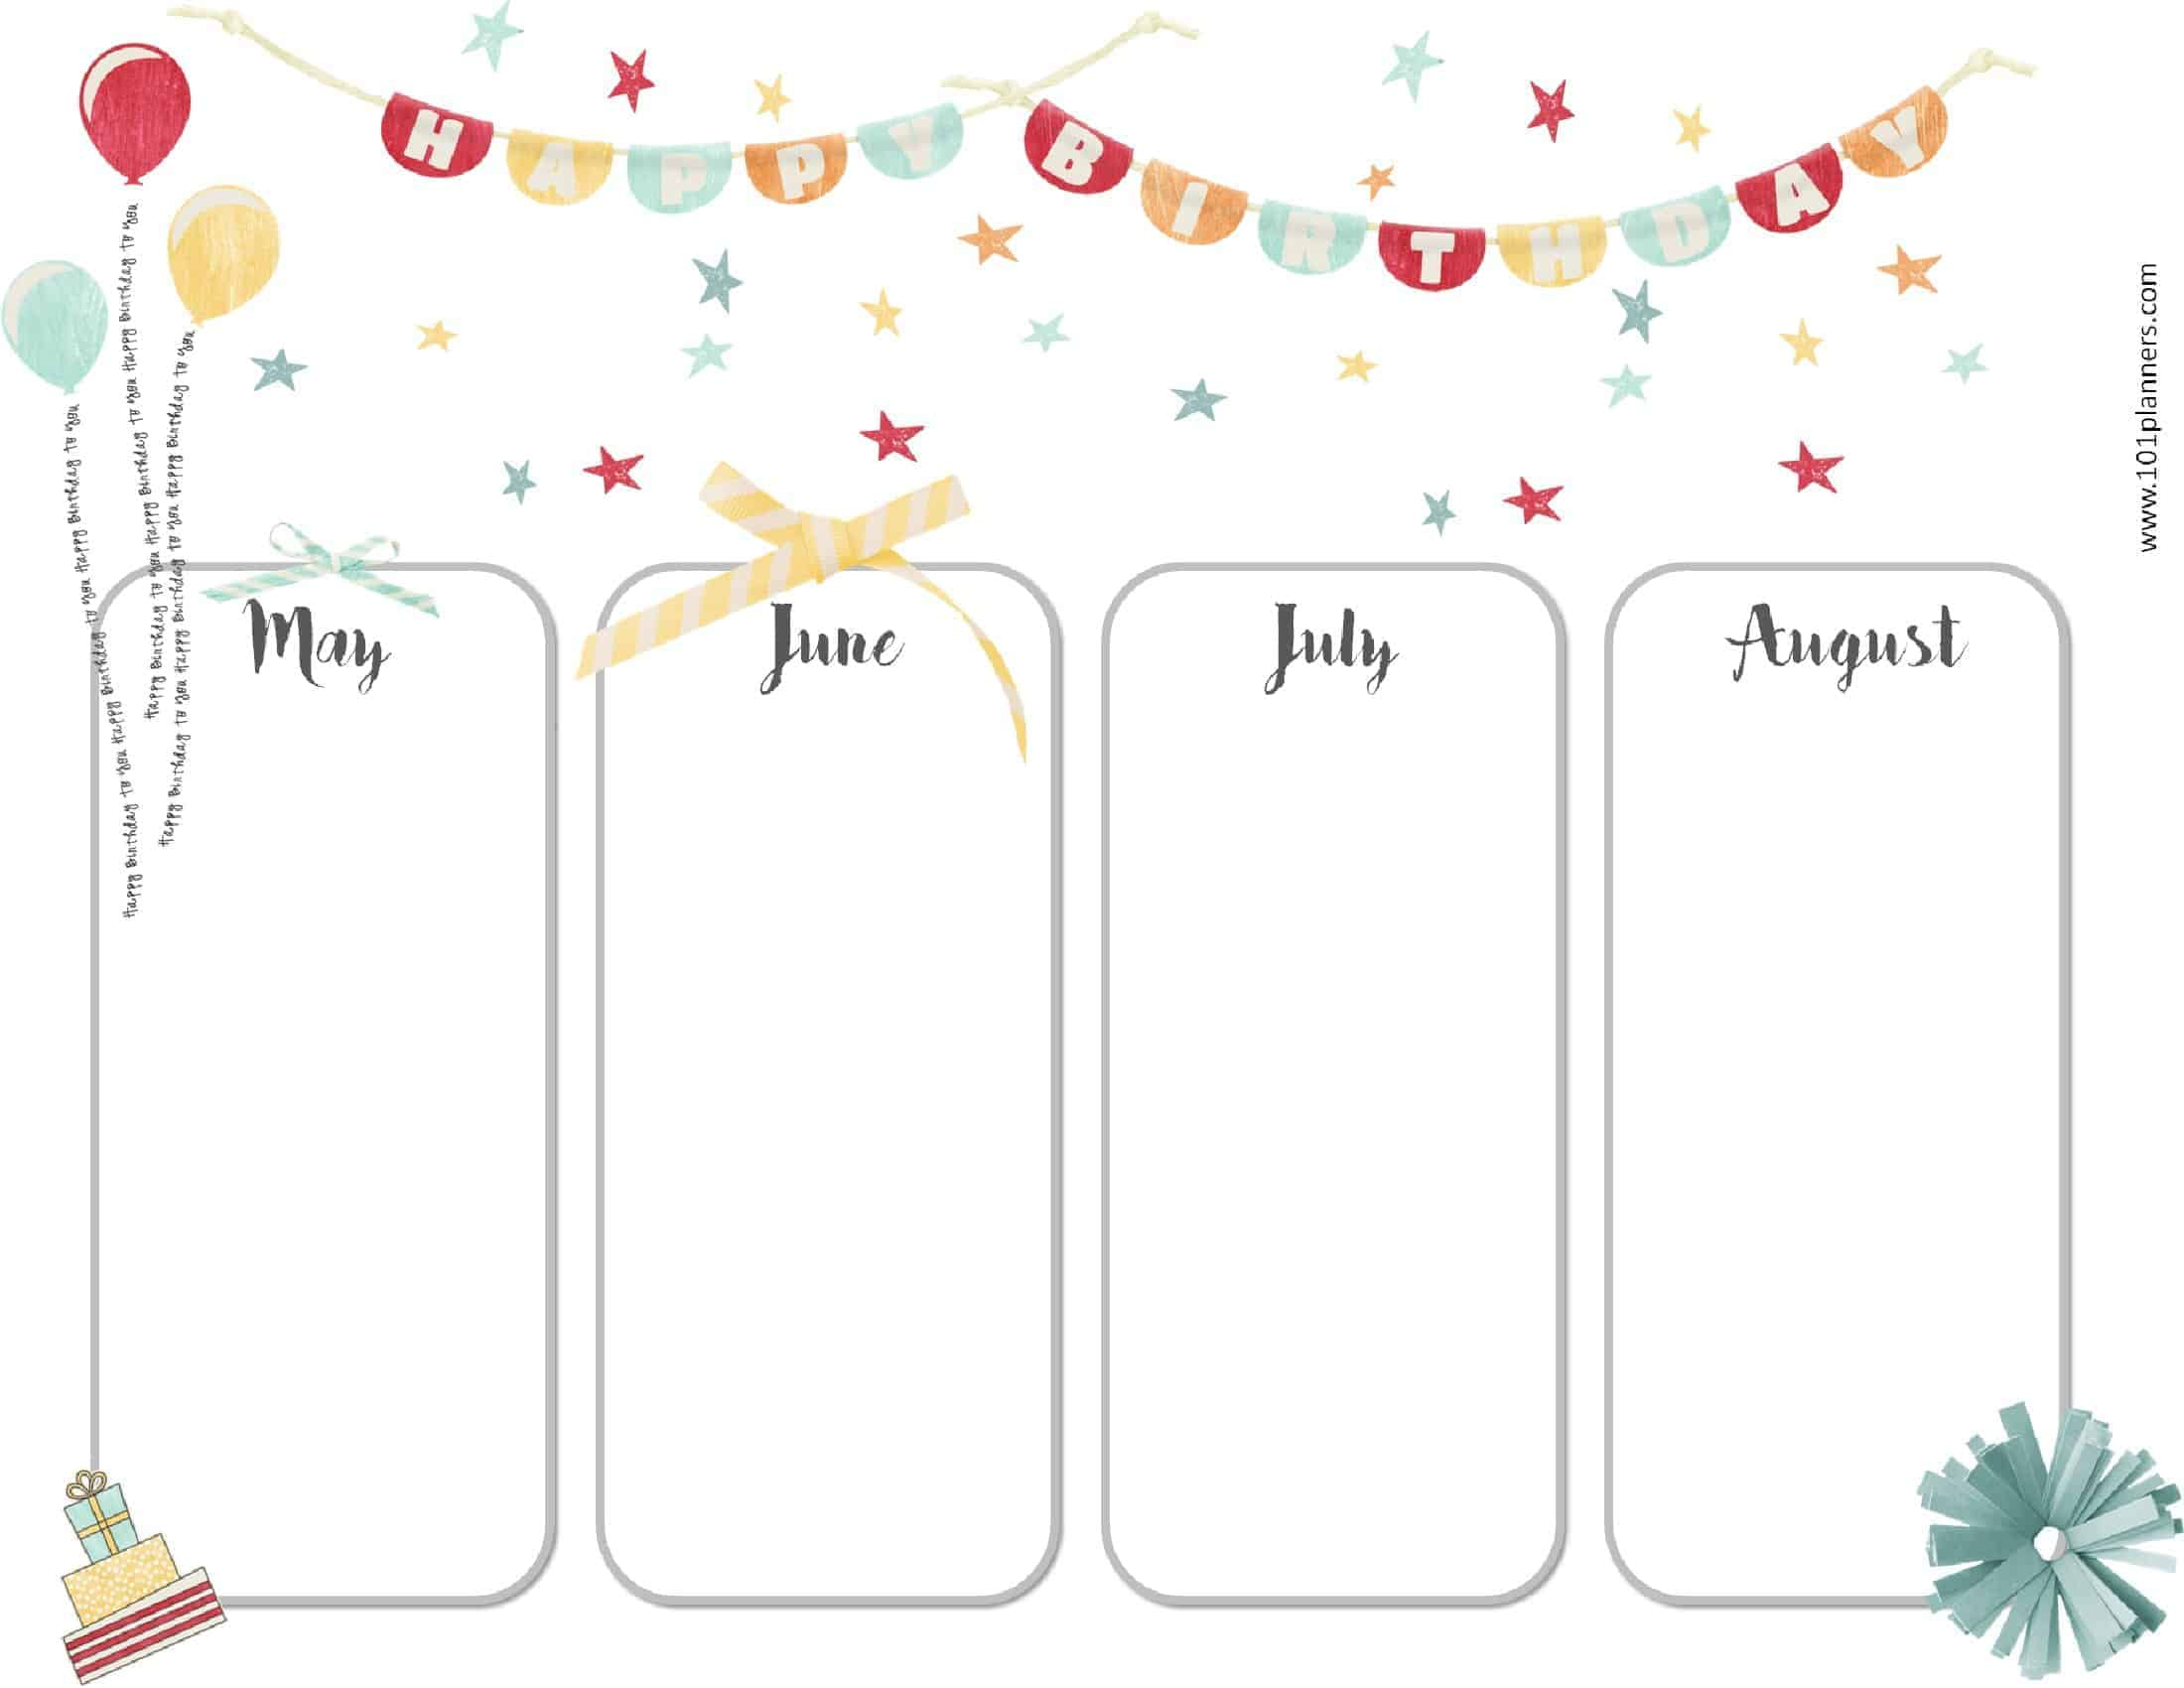 6E88 Birthday Chart Template | Wiring Library intended for Free Printable Birthday Chart